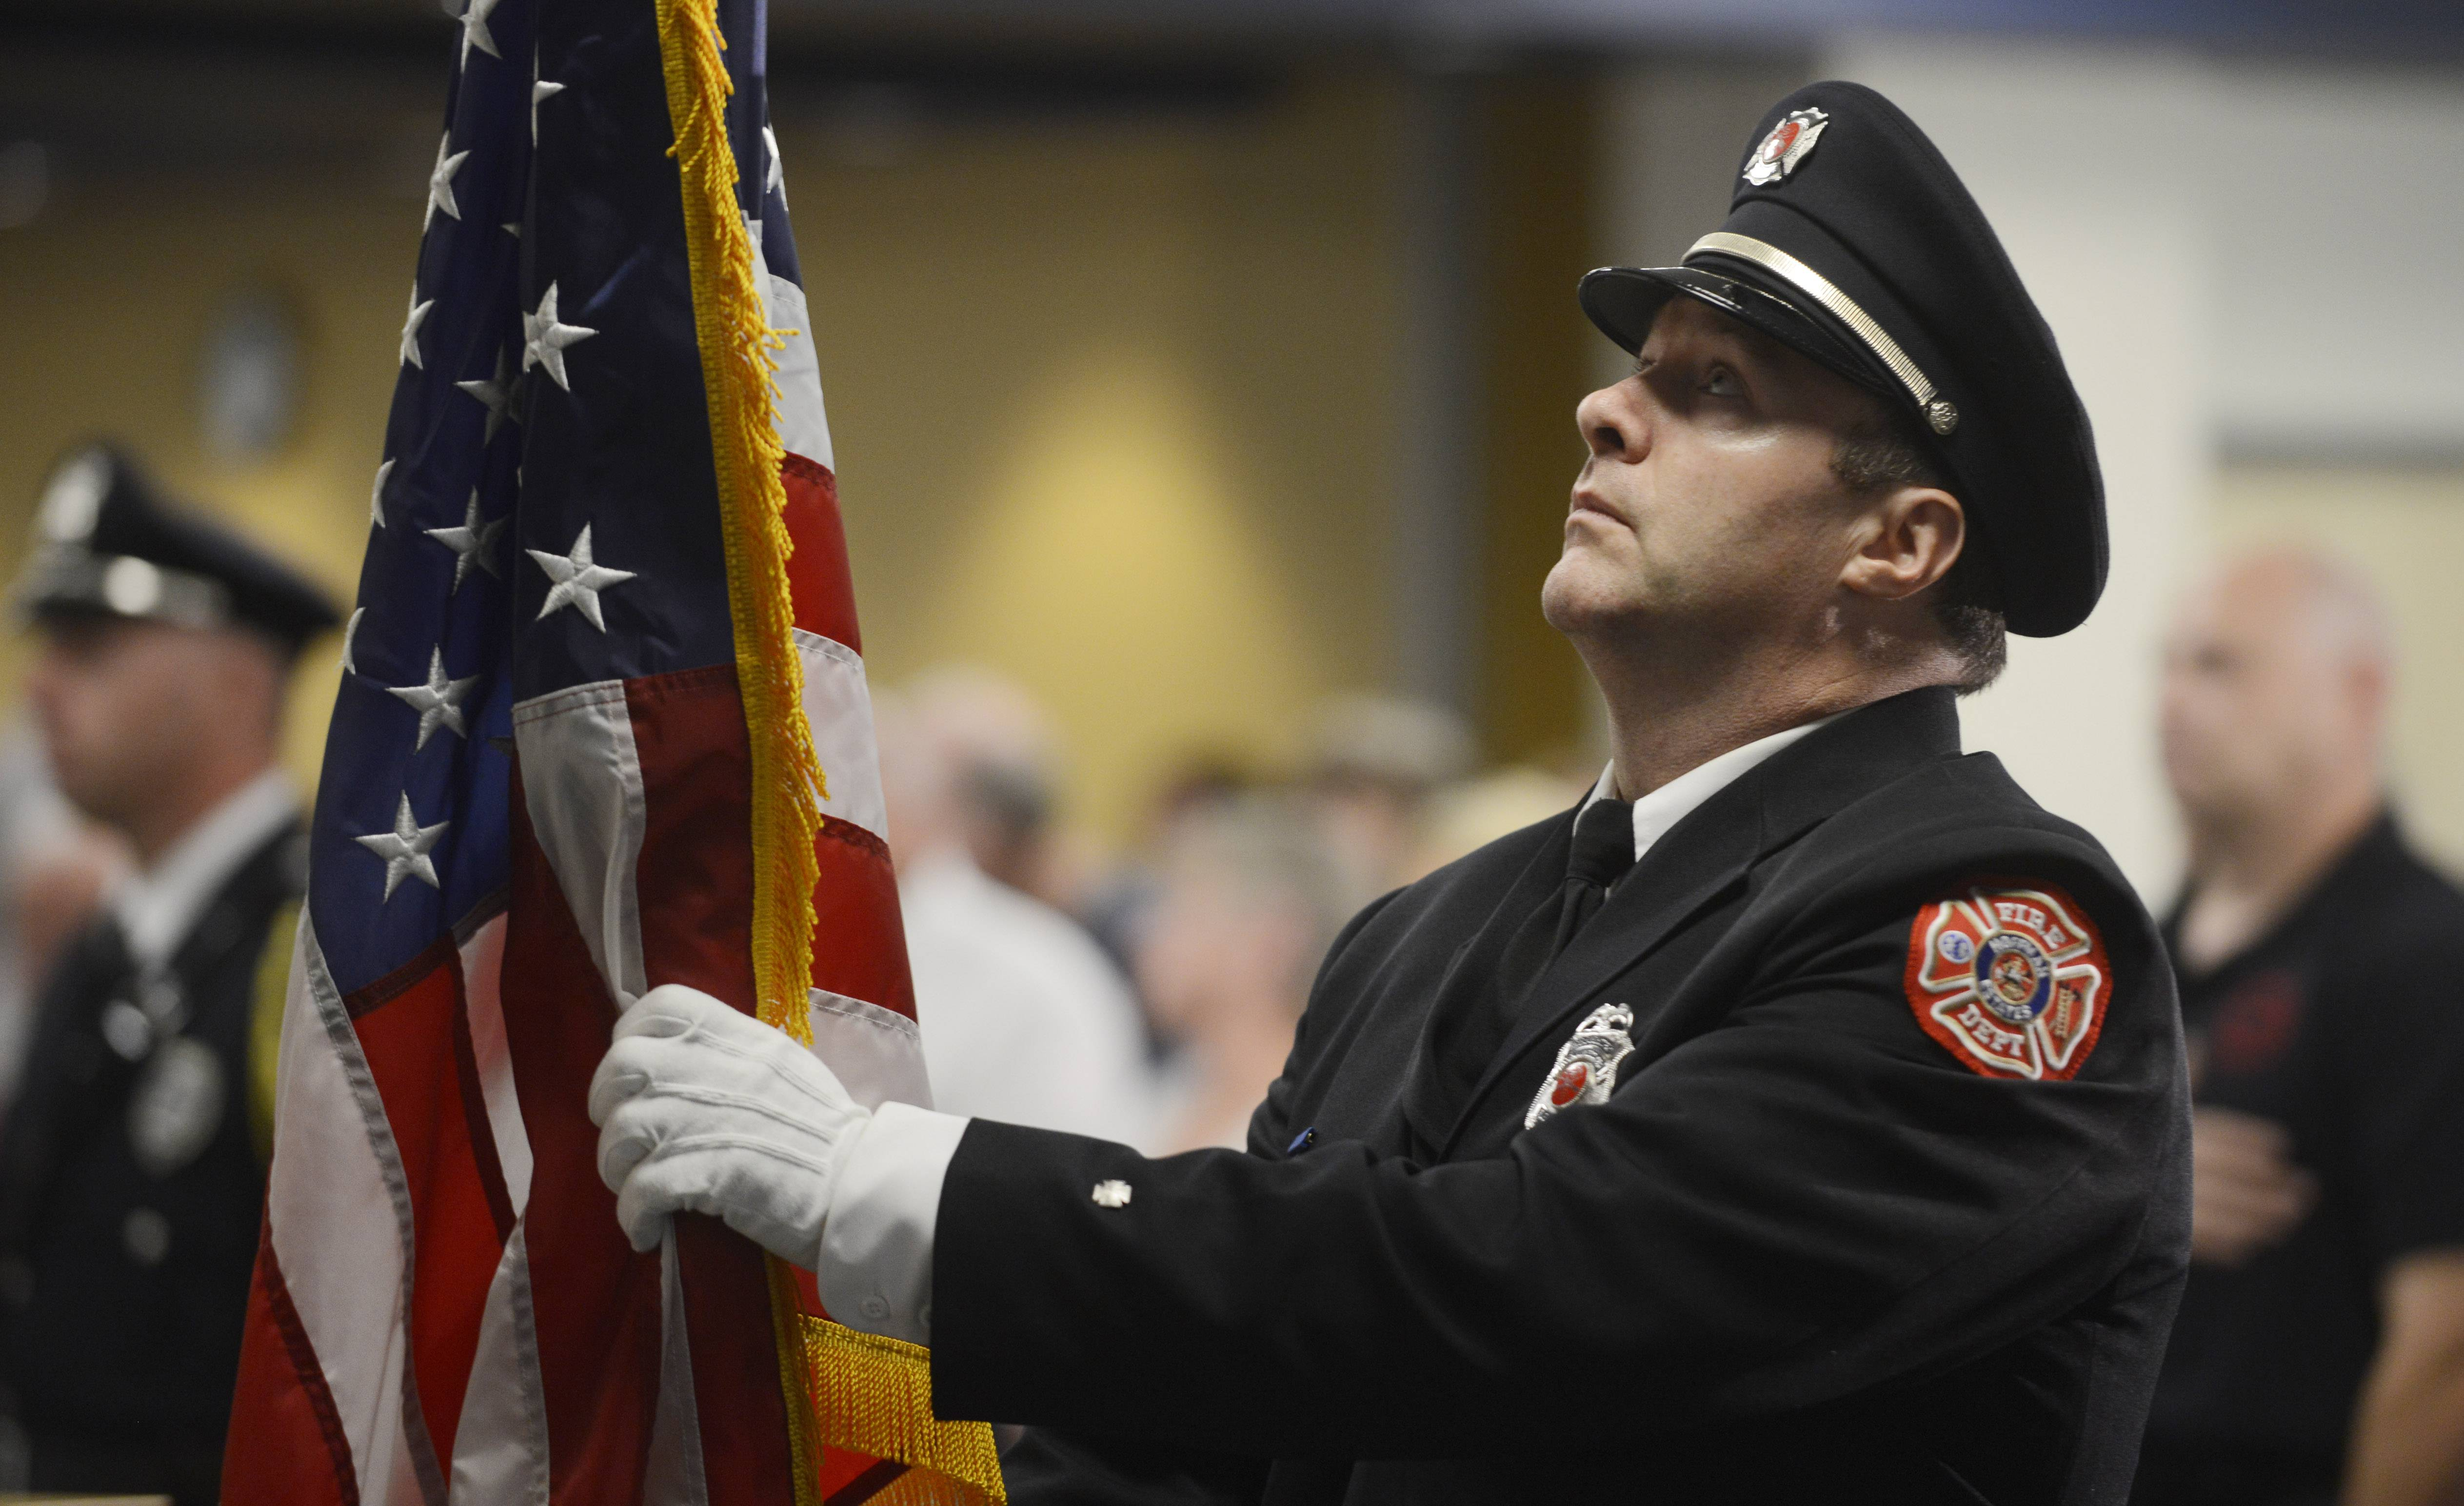 Hoffman Estates Firefighter/paramedic and honor guard member Rob Petz places the colors during the Village of Hoffman Estates' memorial service for victims of the September 11, 2001 terrorist attacks, held Wednesday evening at the village hall.